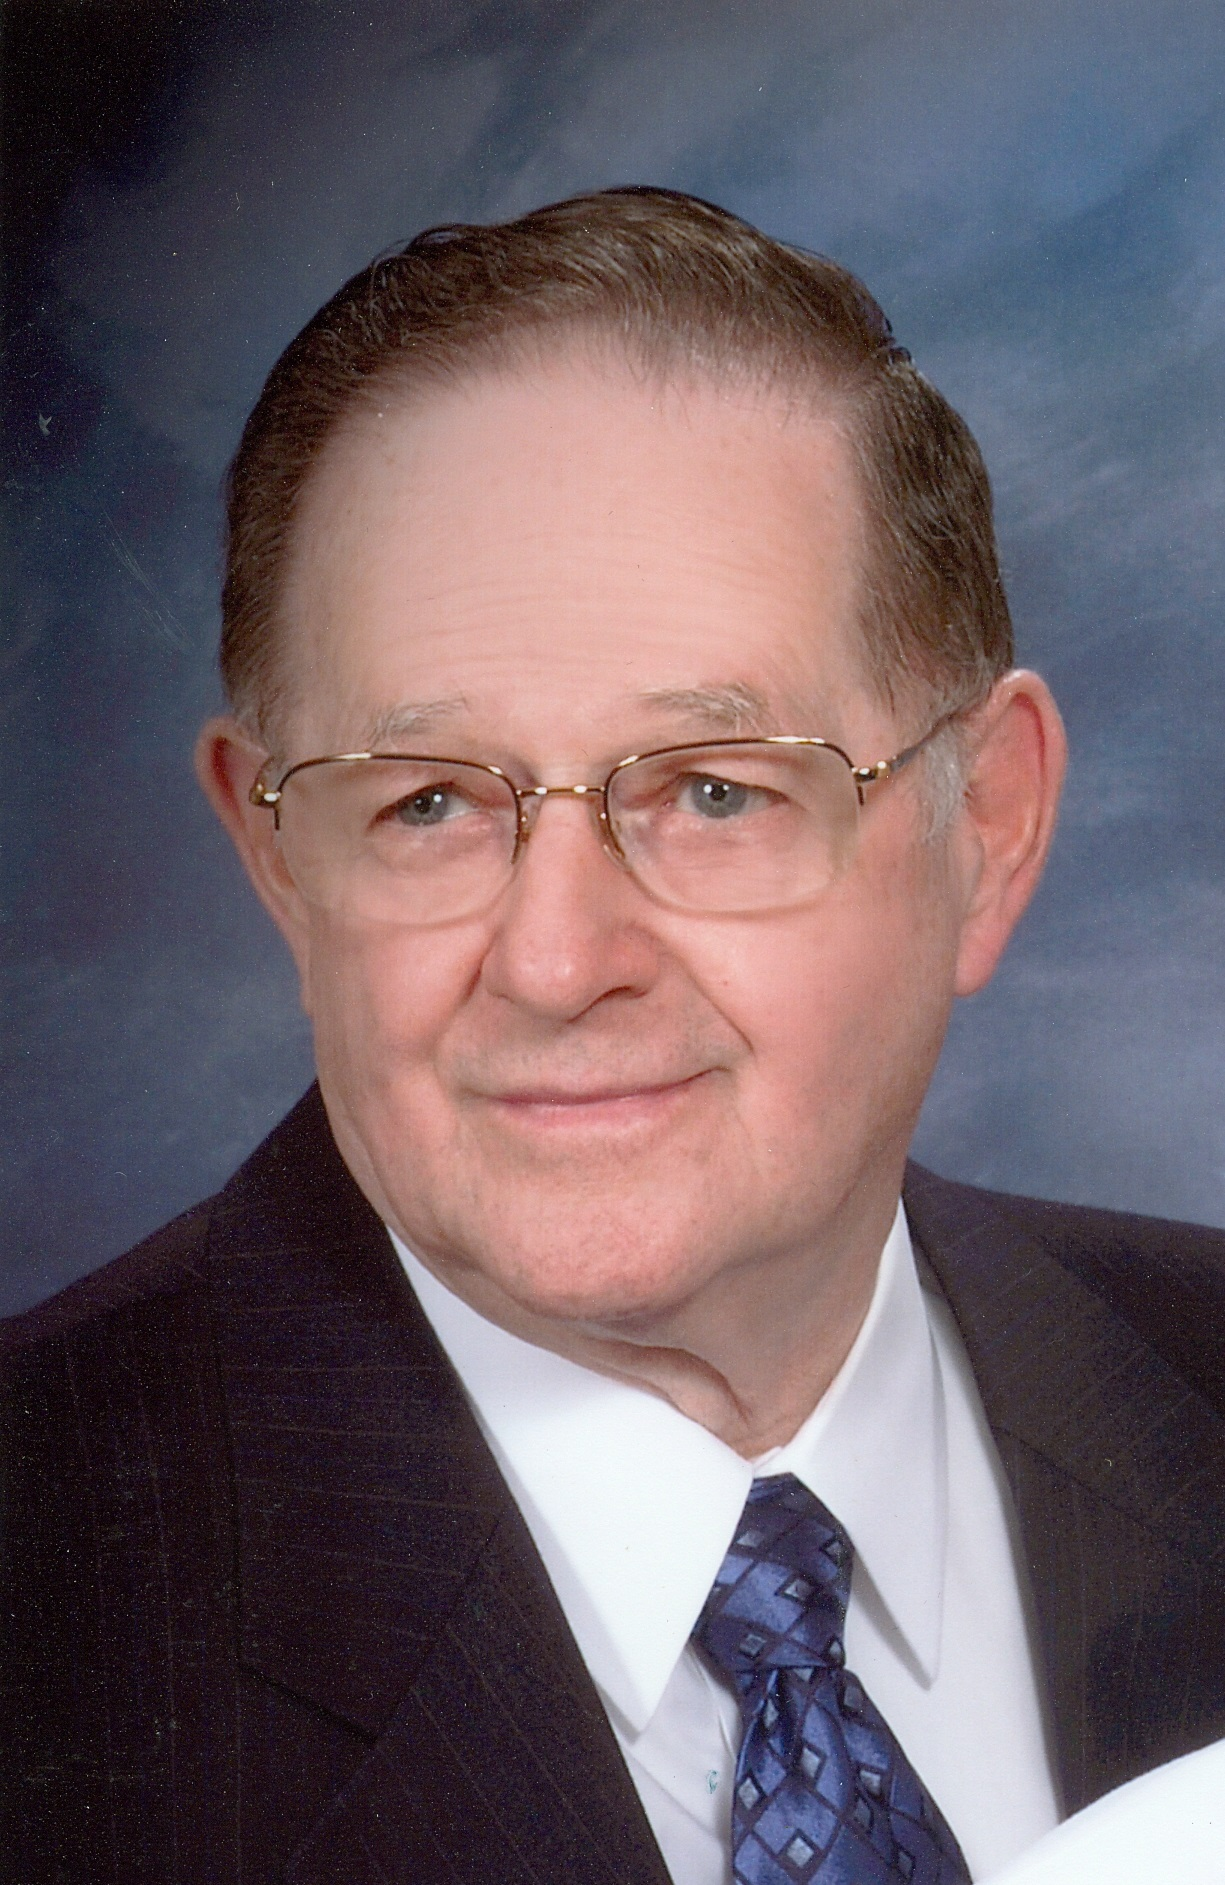 Richard A. Klebe, age 81, of Fremont, Nebraska